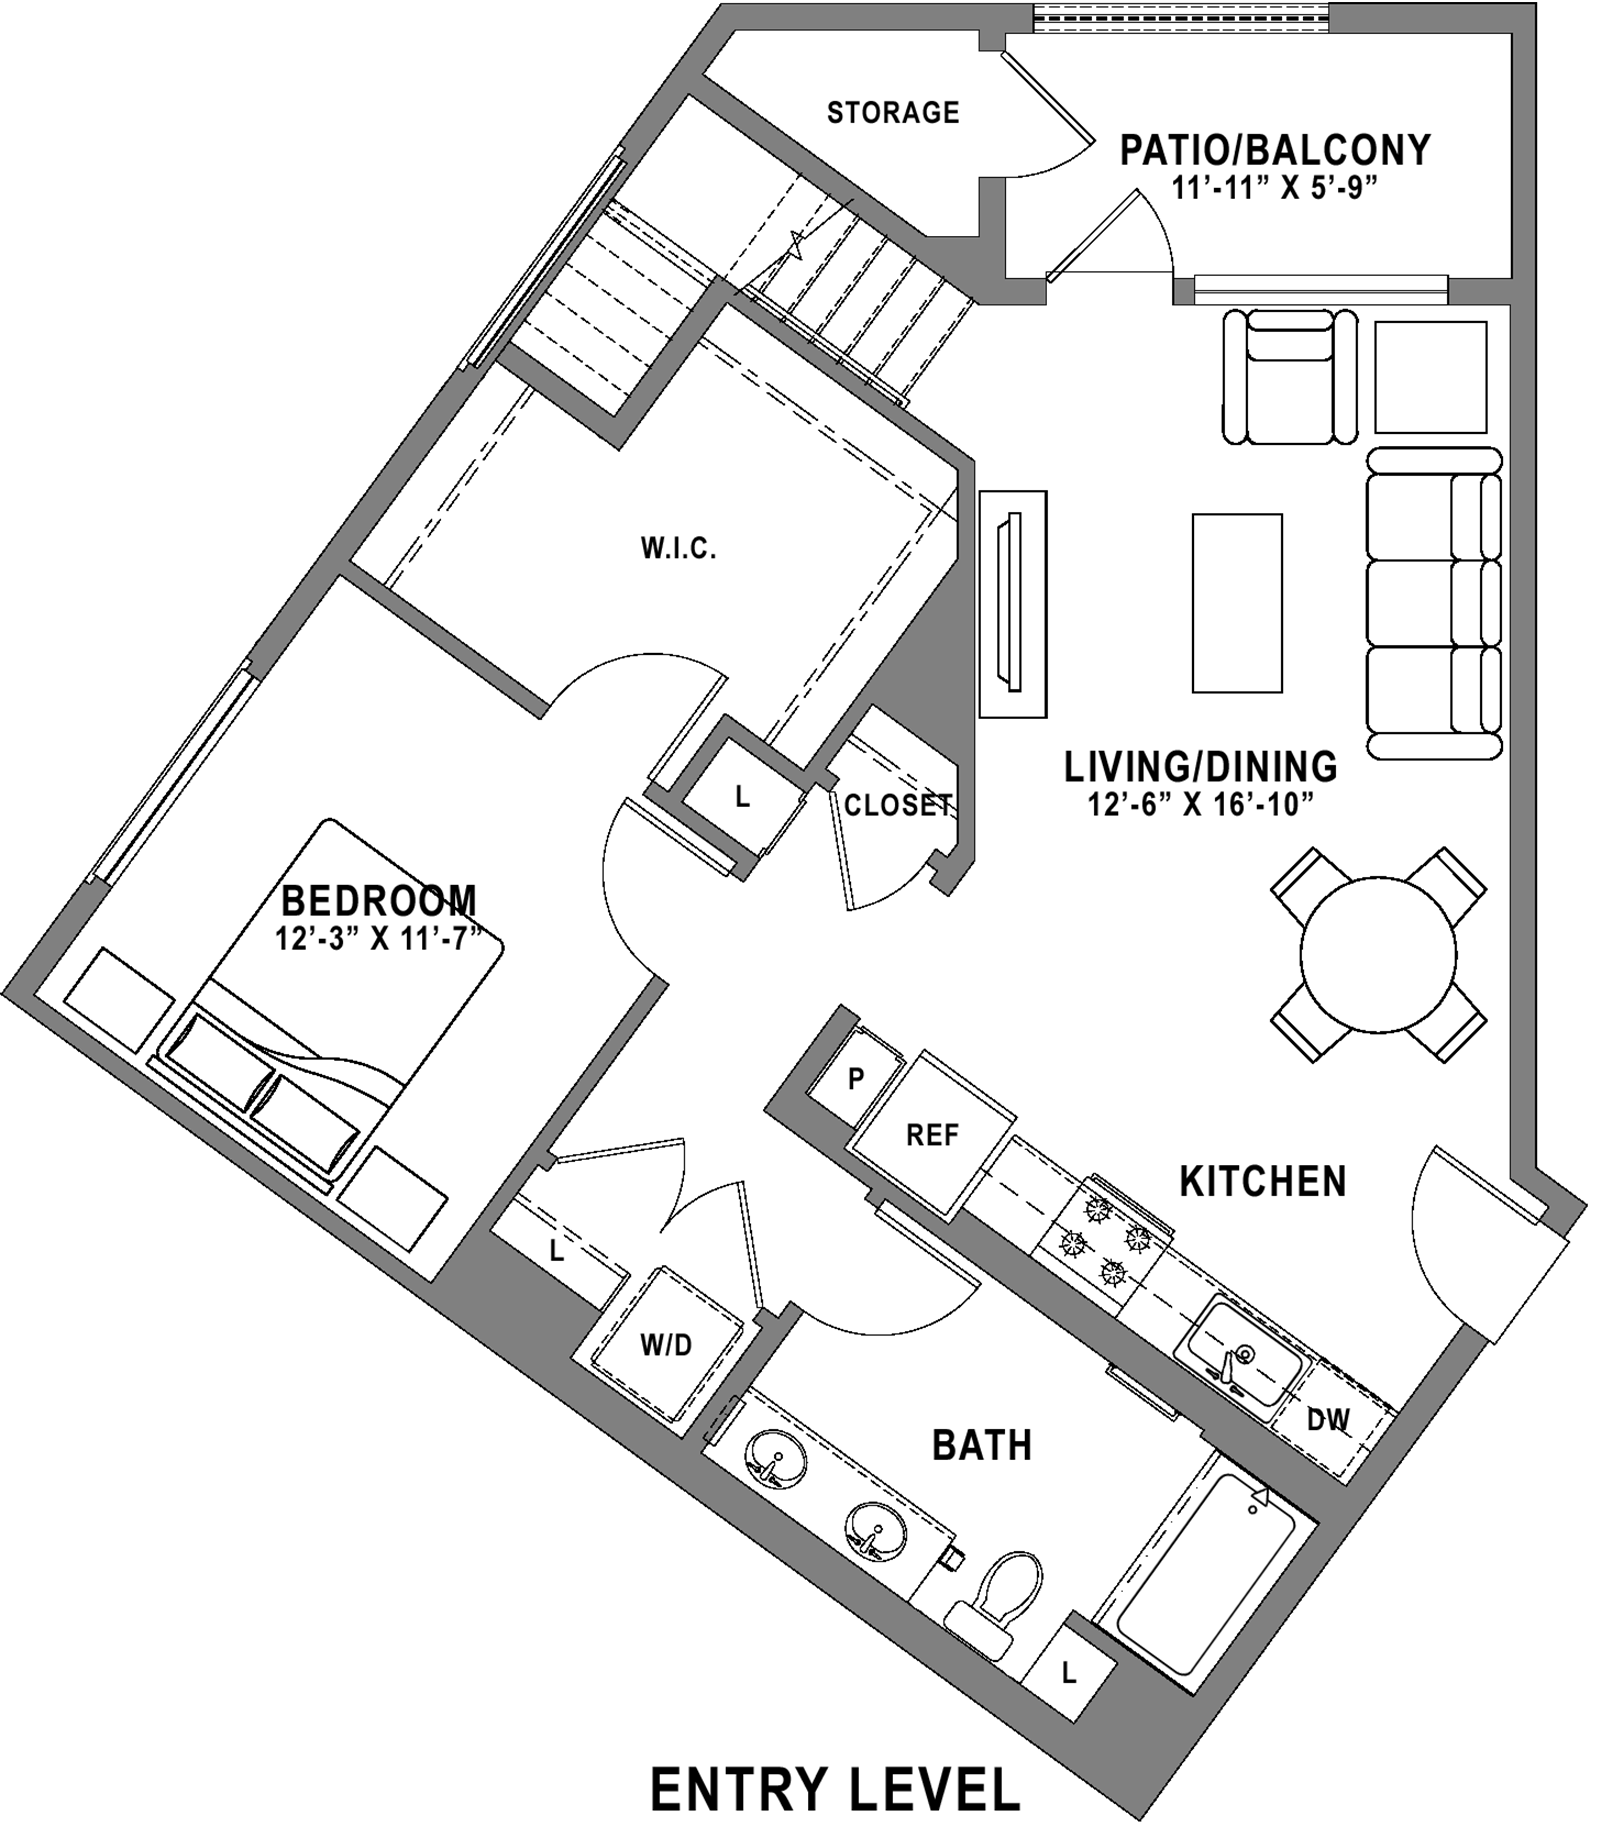 Plan A2 Loft - 1 Bedroom+ Loft, 1 Bath Floor Plan